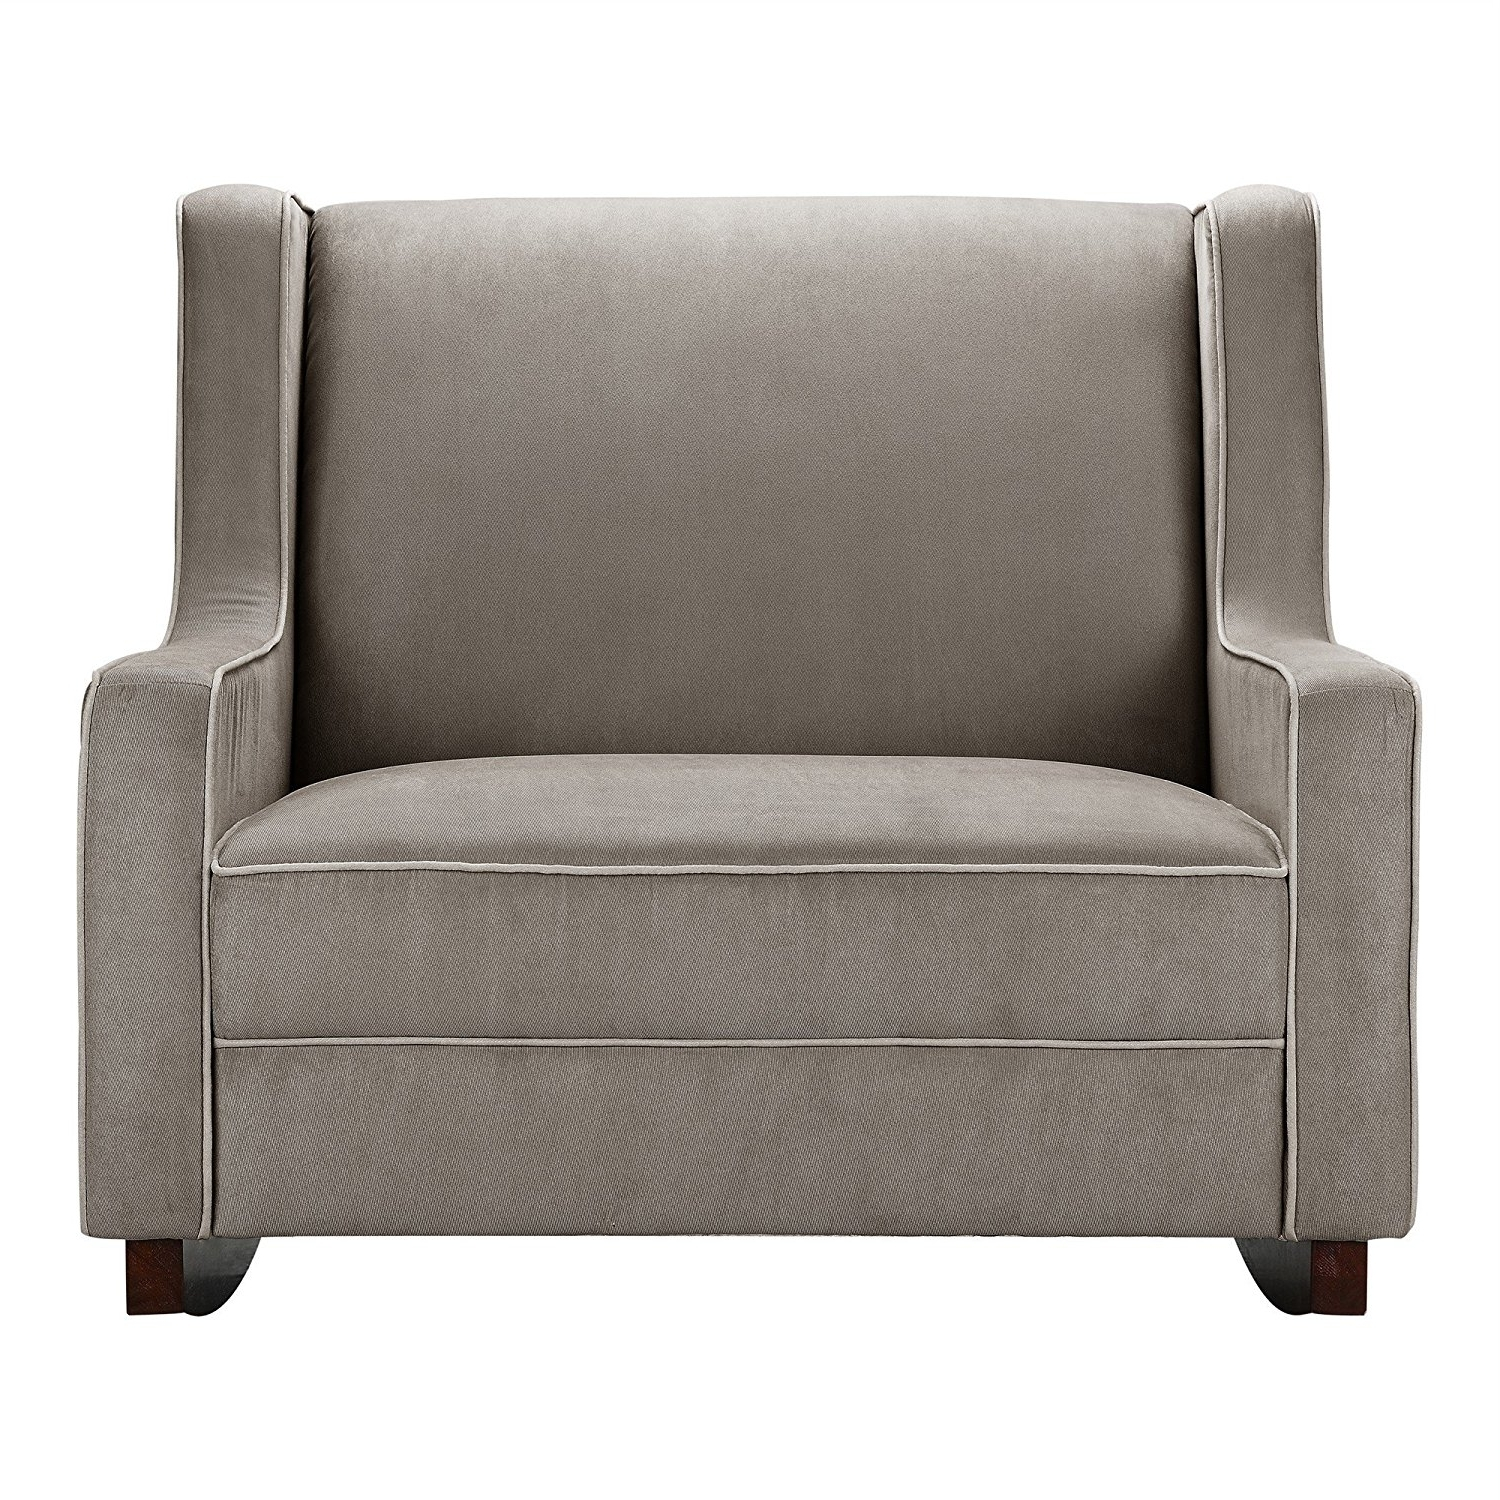 Famous Amazon : Baby Relax Double Rocker, Dark Taupe : Baby Intended For Rocking Sofa Chairs (View 5 of 15)